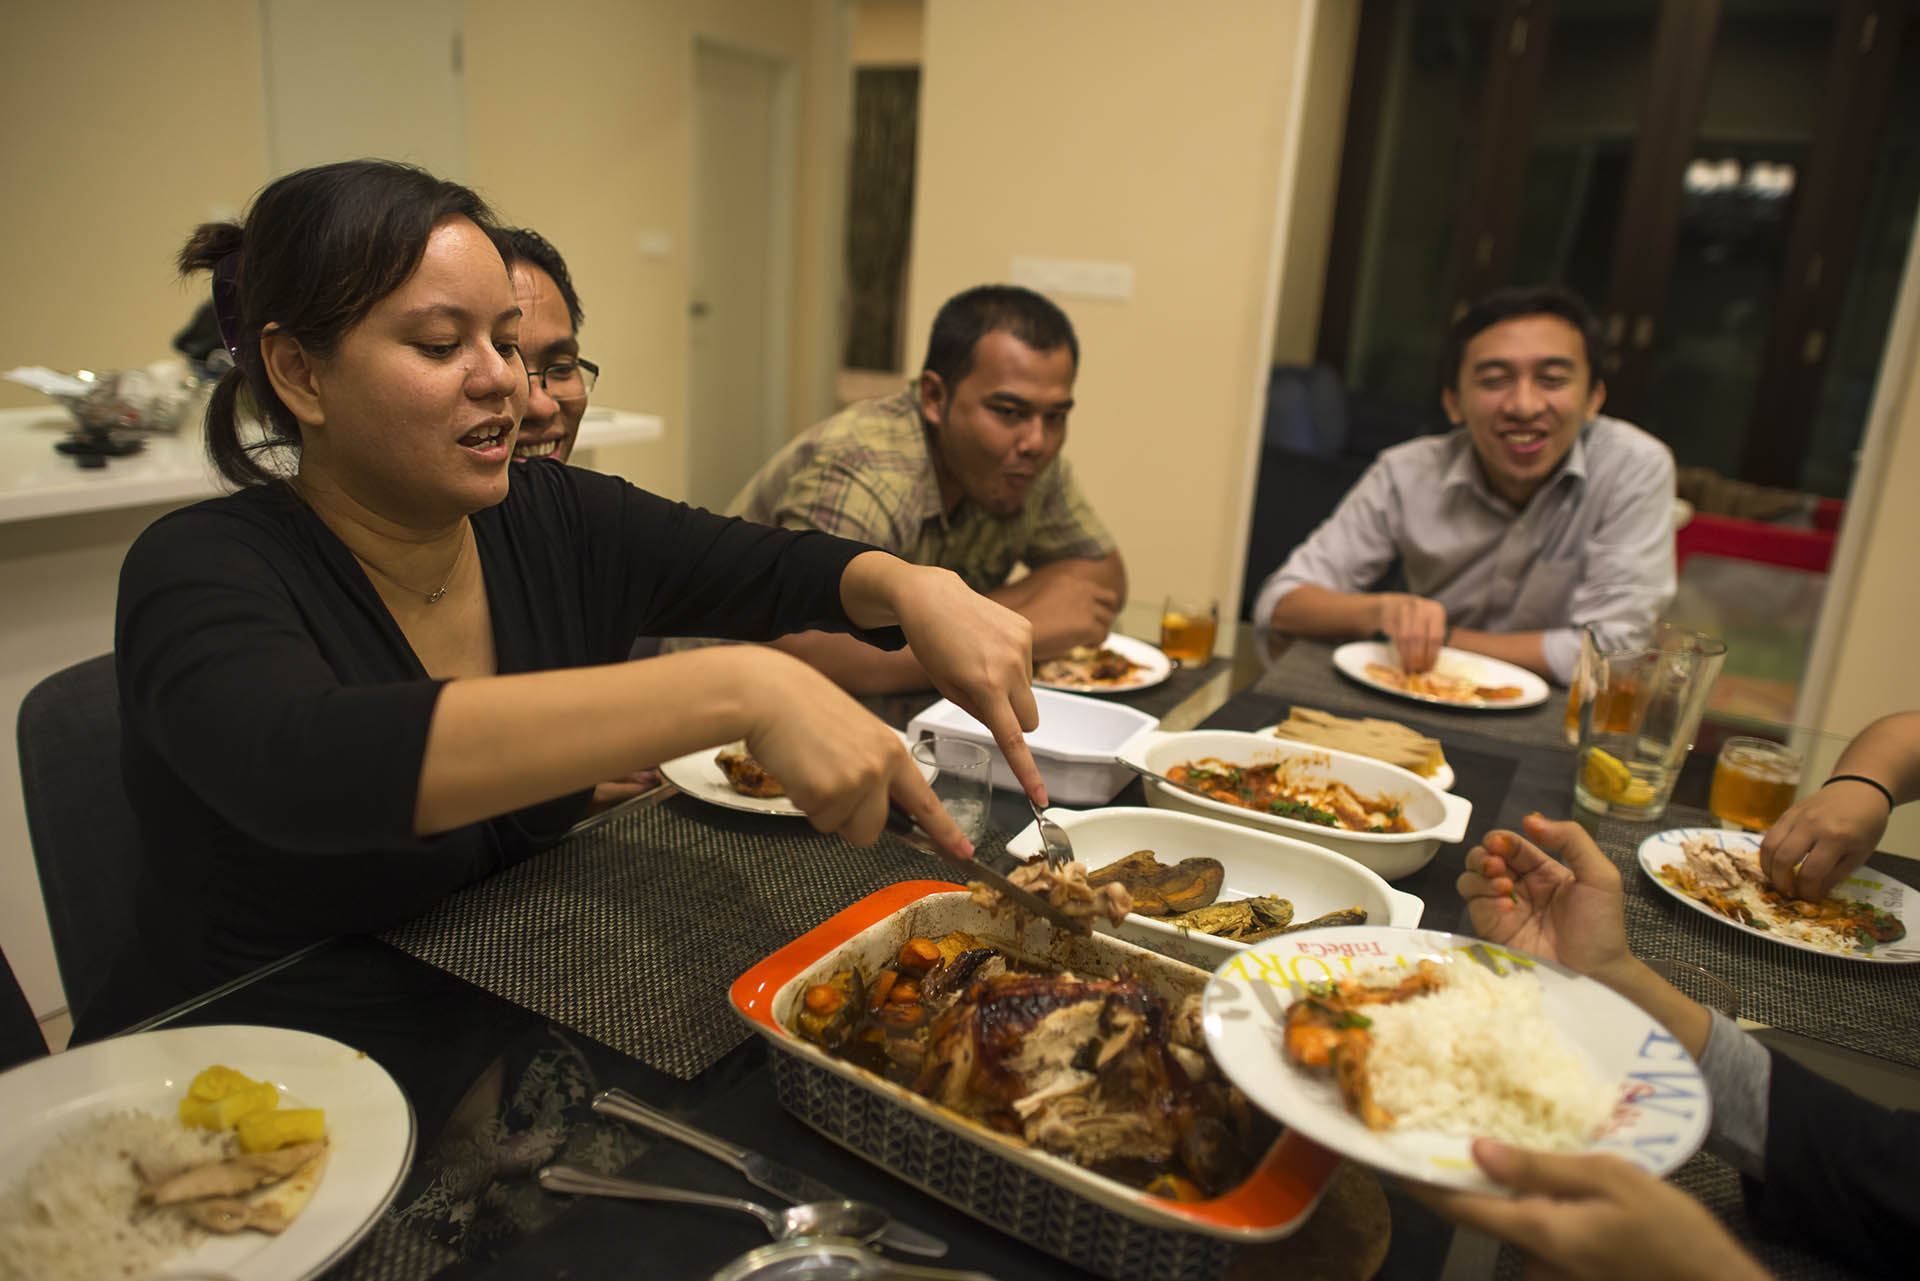 malaysian eating habit Consumer lifestyles in malaysia: the recent sluggish economy combined with currency fluctuations slowed consumer spending, but more recently growth  and home ownership, this report also contains hard-to-find statistics on more specific consumer-related topics like eating and drinking habits, shopping habits, preferred types of stores and.